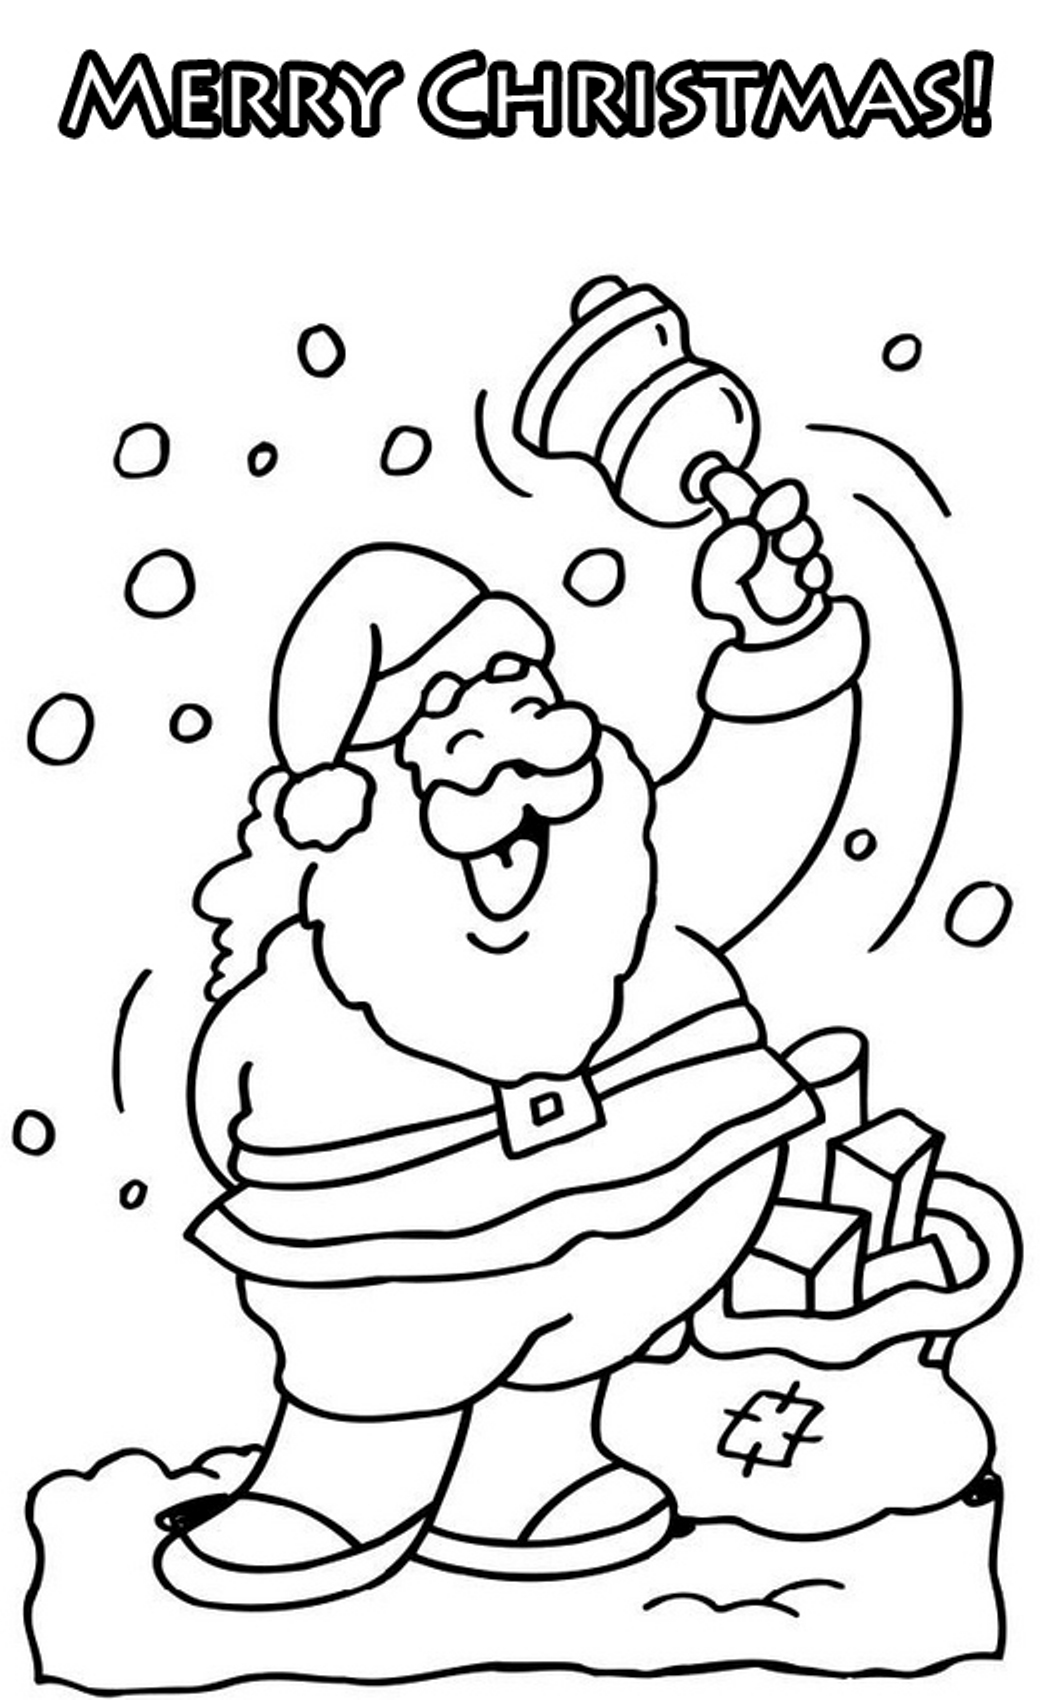 holiday coloring sheets happy christmas coloring pages download and print for free coloring holiday sheets